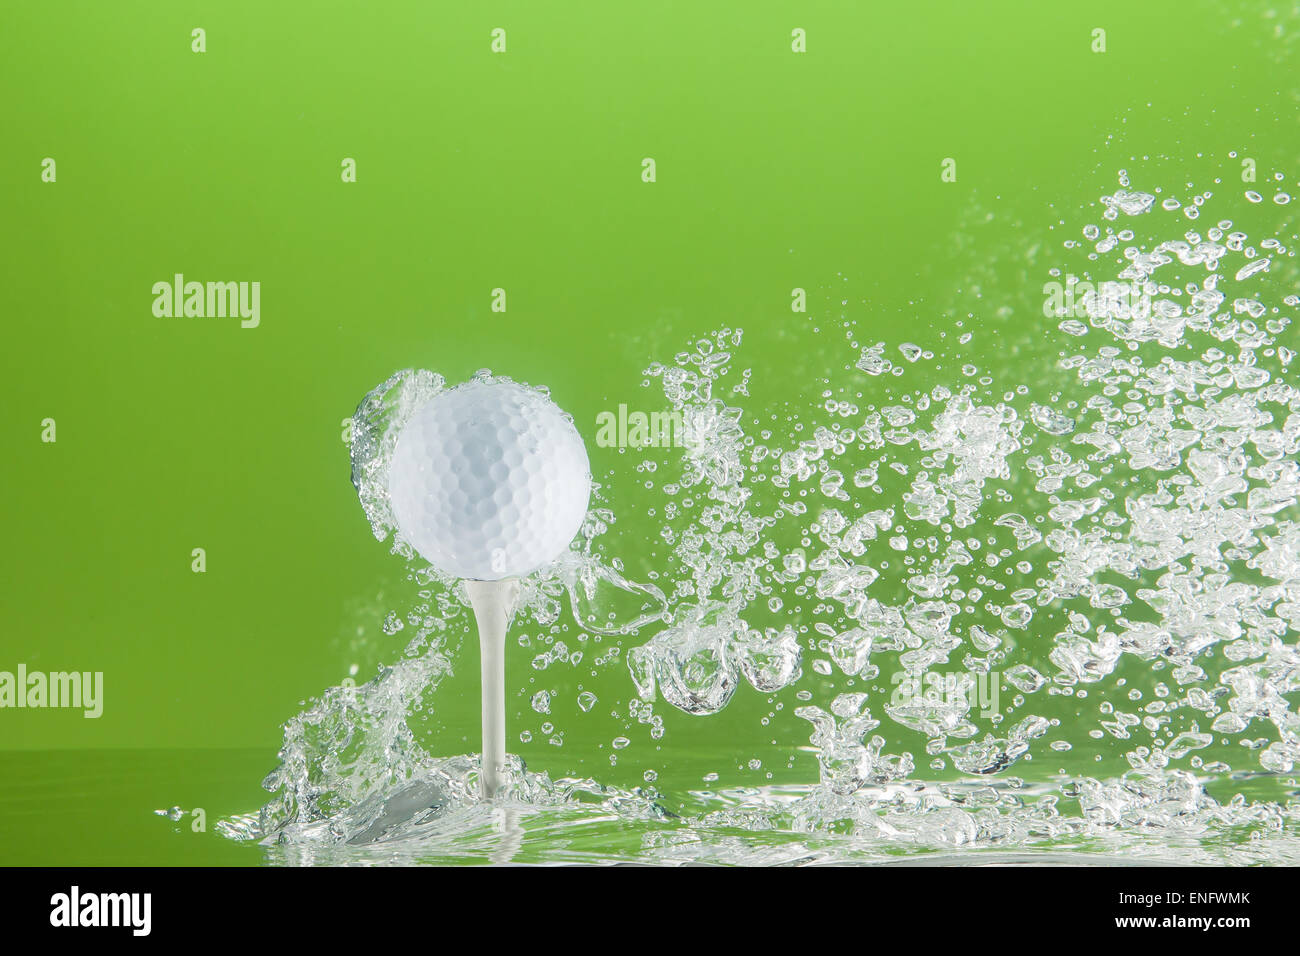 Golfball on a peg in water with bubbles - Stock Image